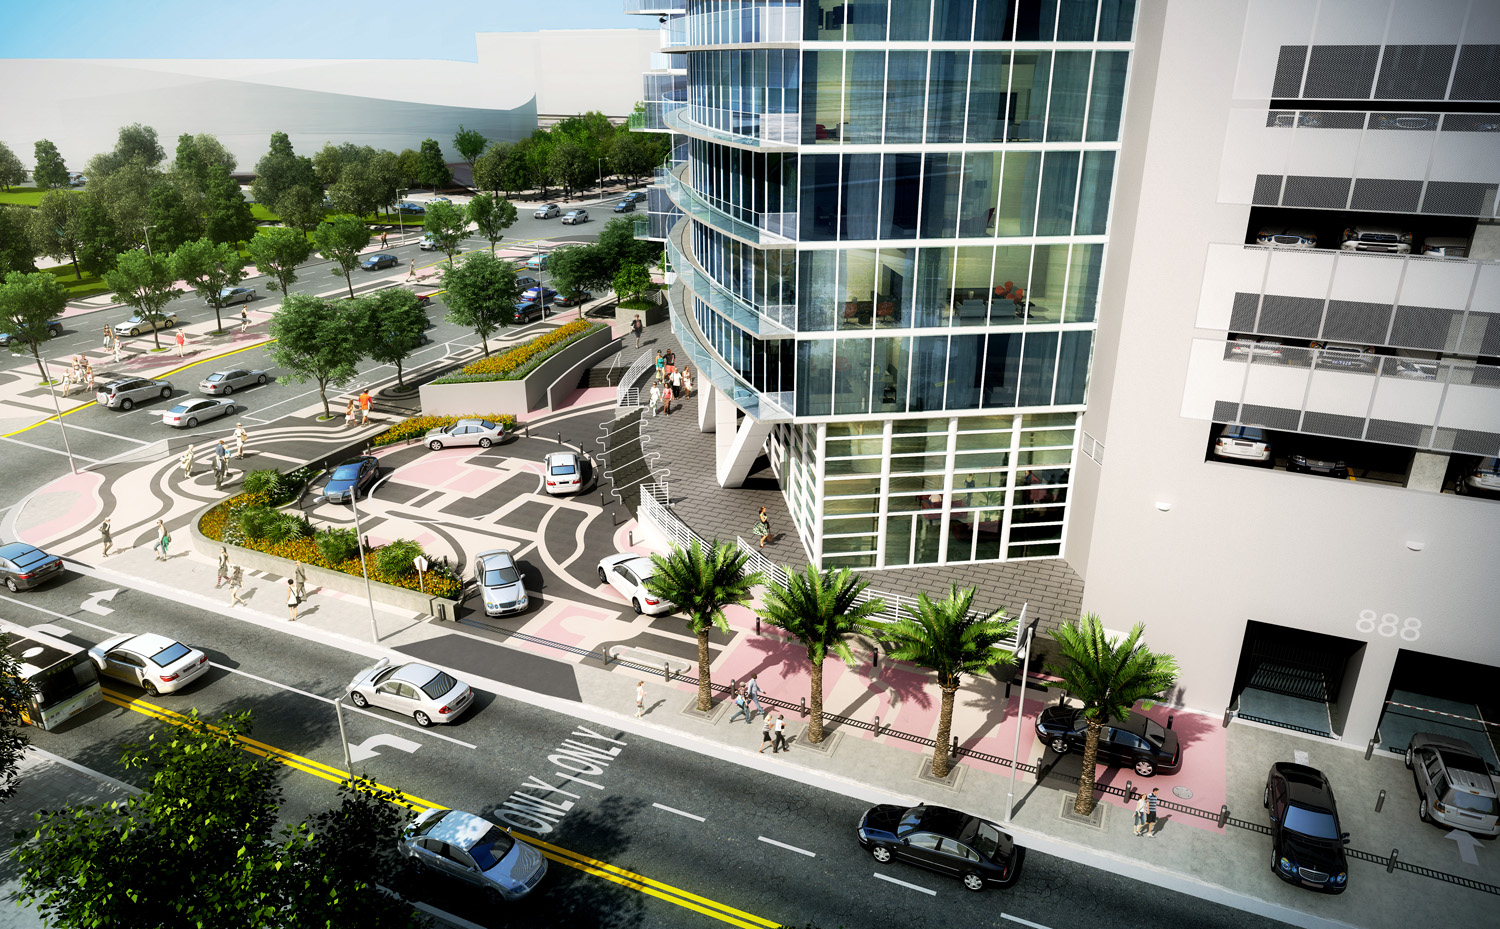 Marina Blue valet area renovation rendering